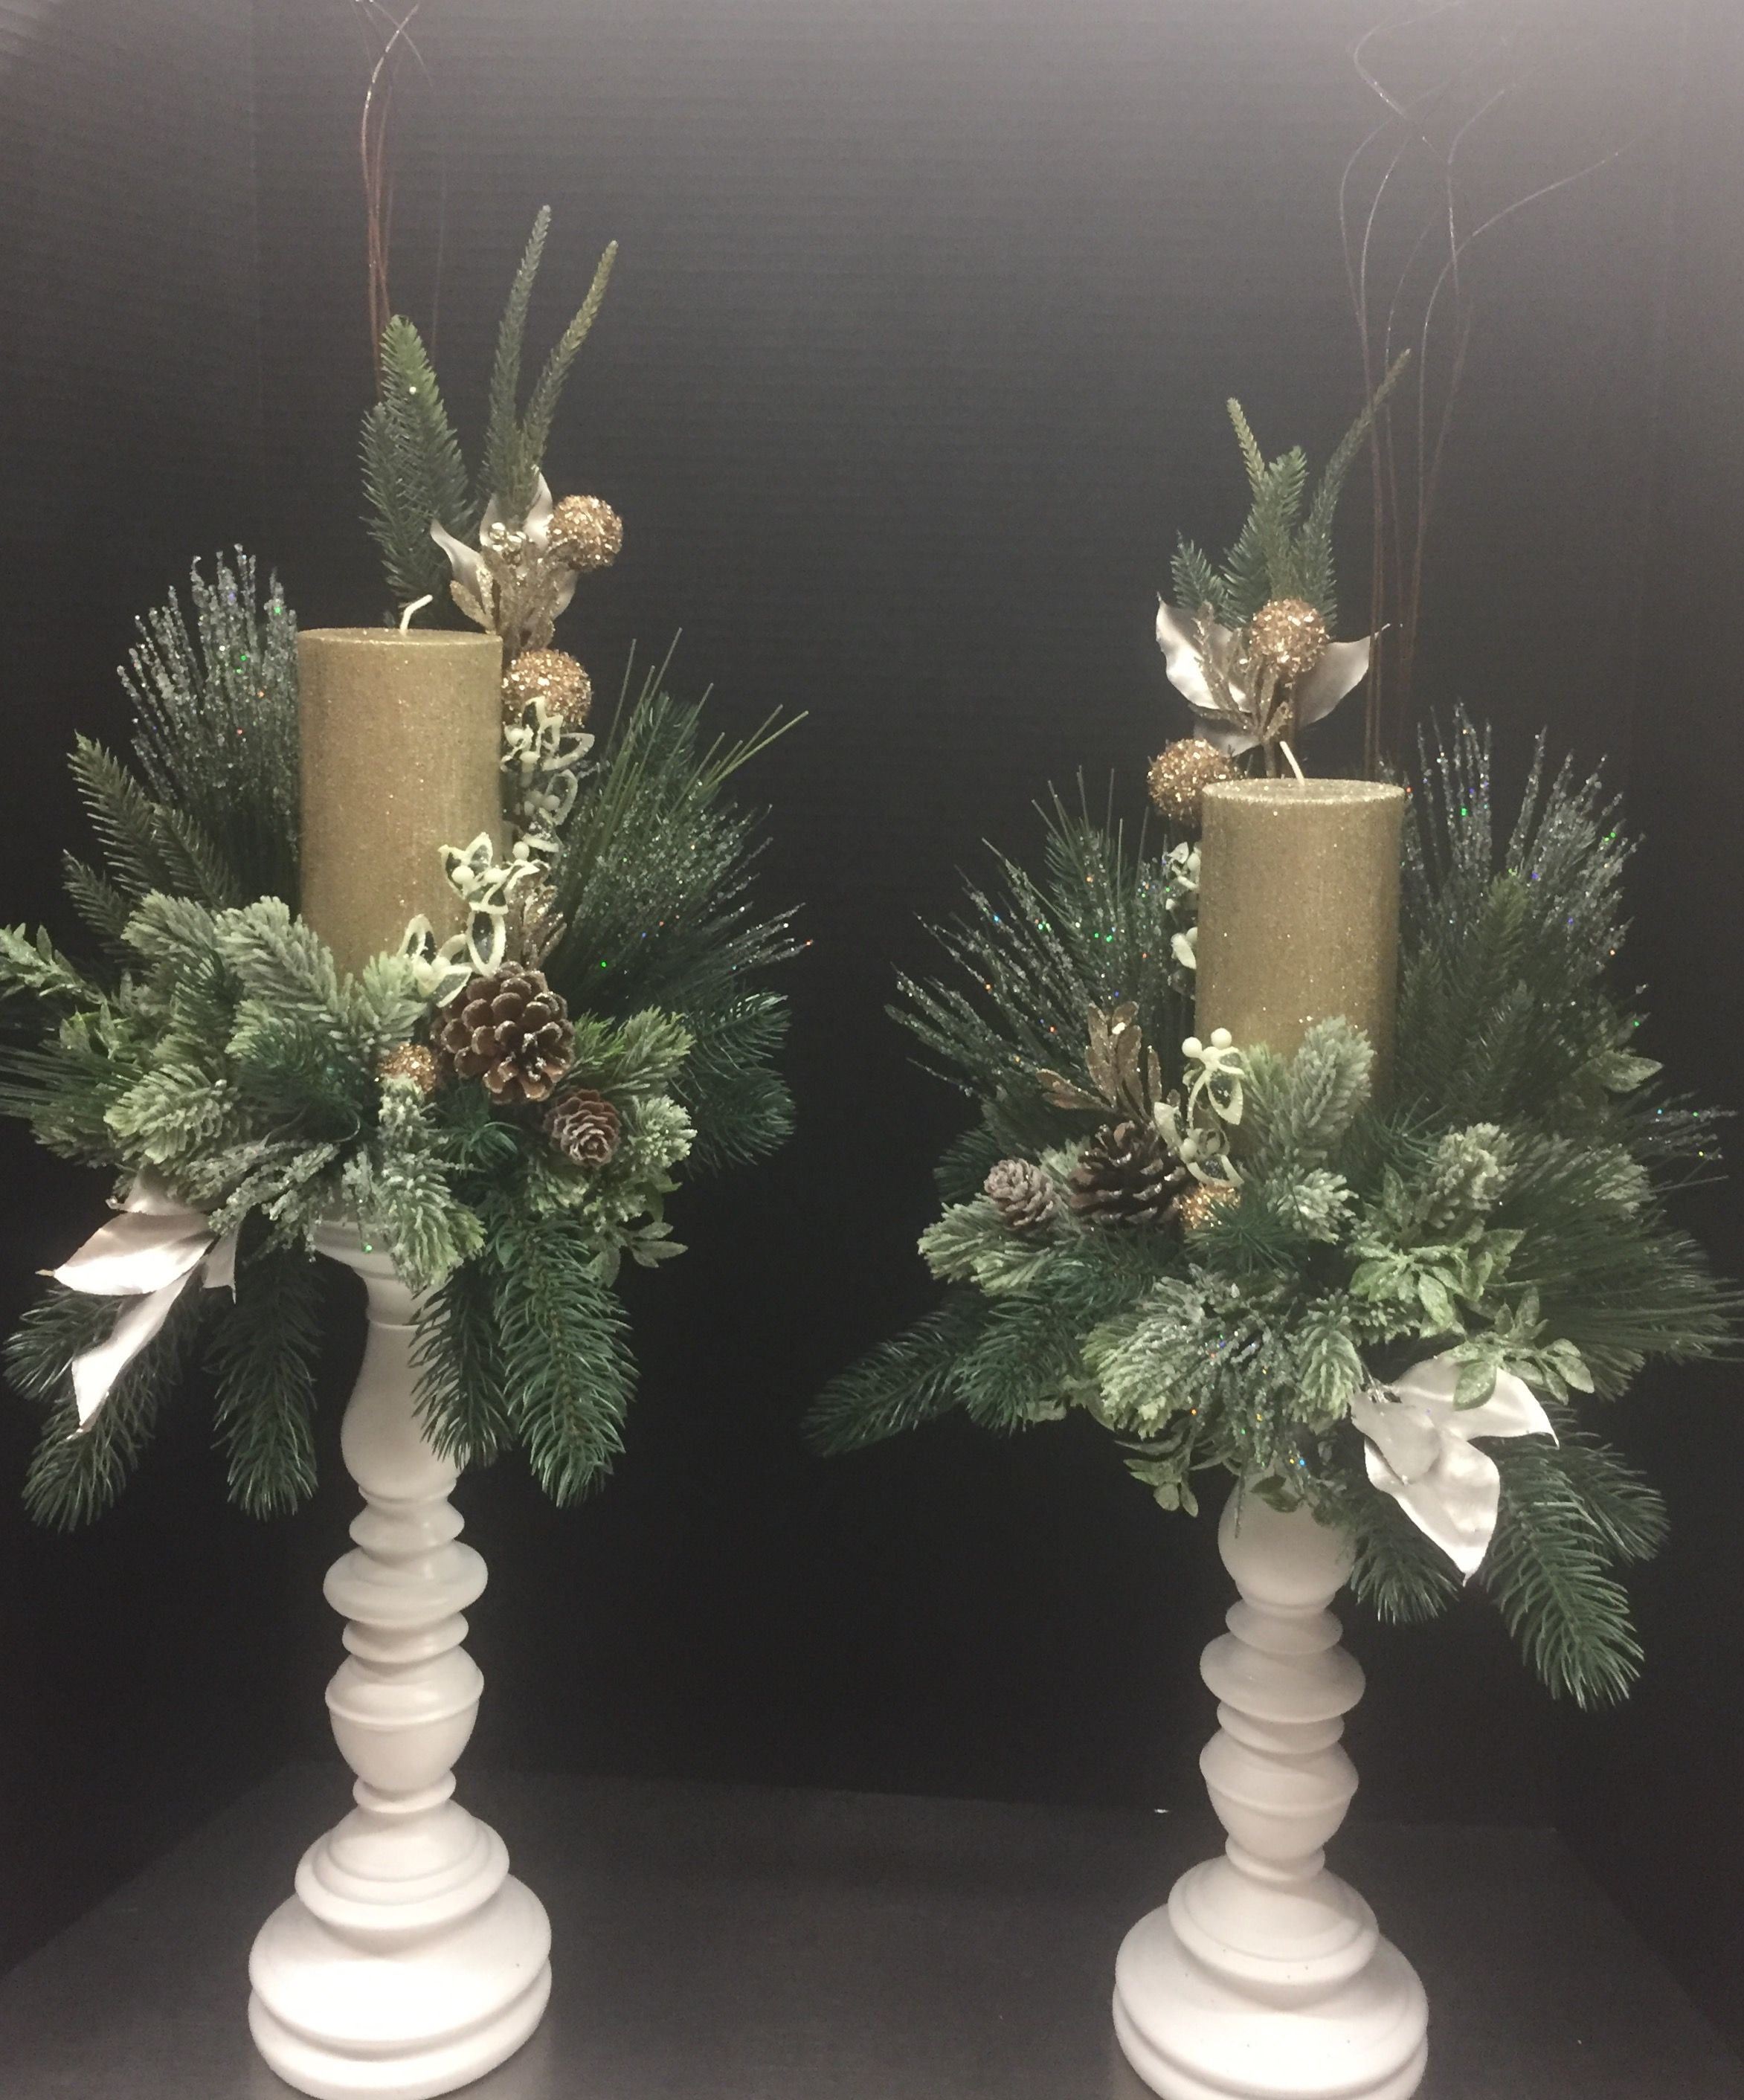 Rustic Glam Collection 2016 floral design Tara Powers Michaels of